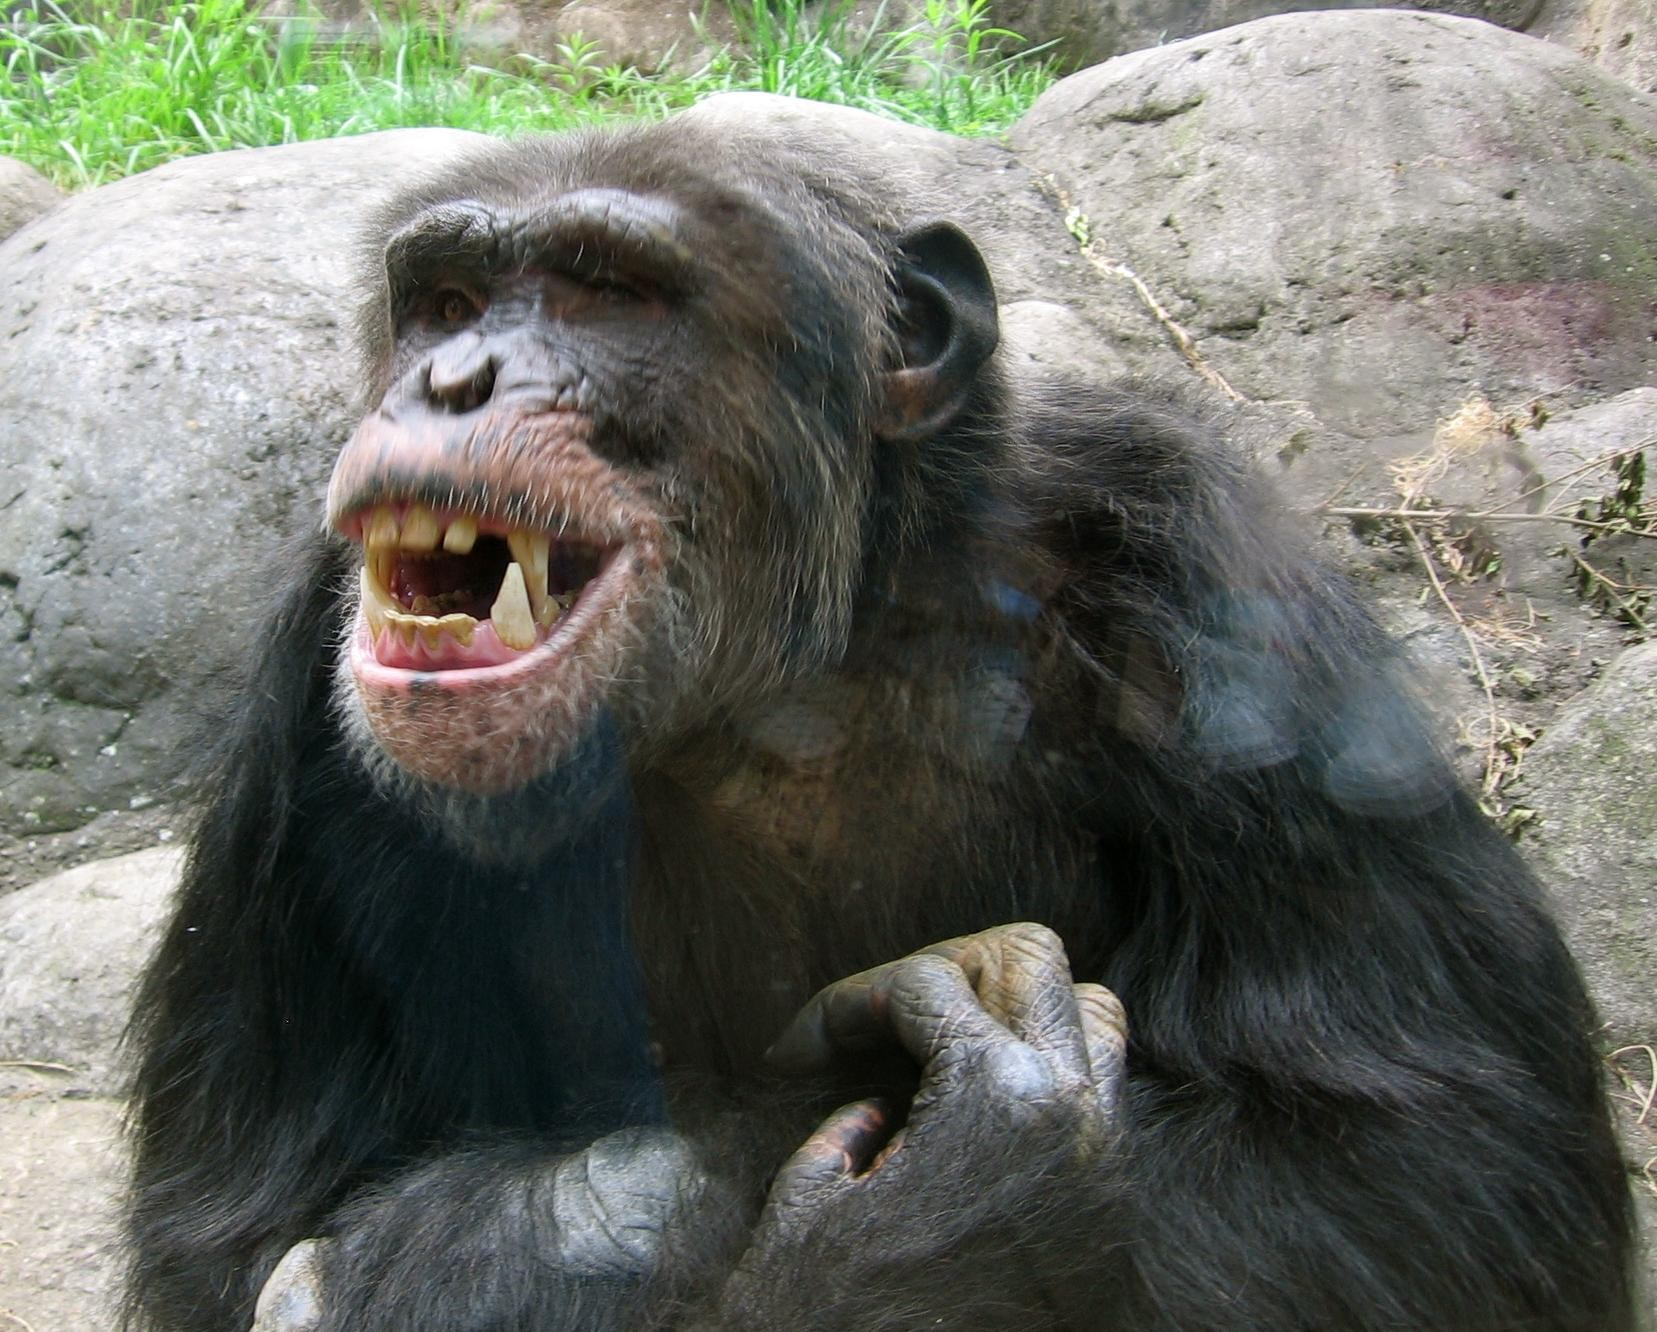 a description of attack of the apes after studying evolution The attack ended when one member of the gang chimpanzees to her study site with evolve a capacity for violence through convergent evolution.